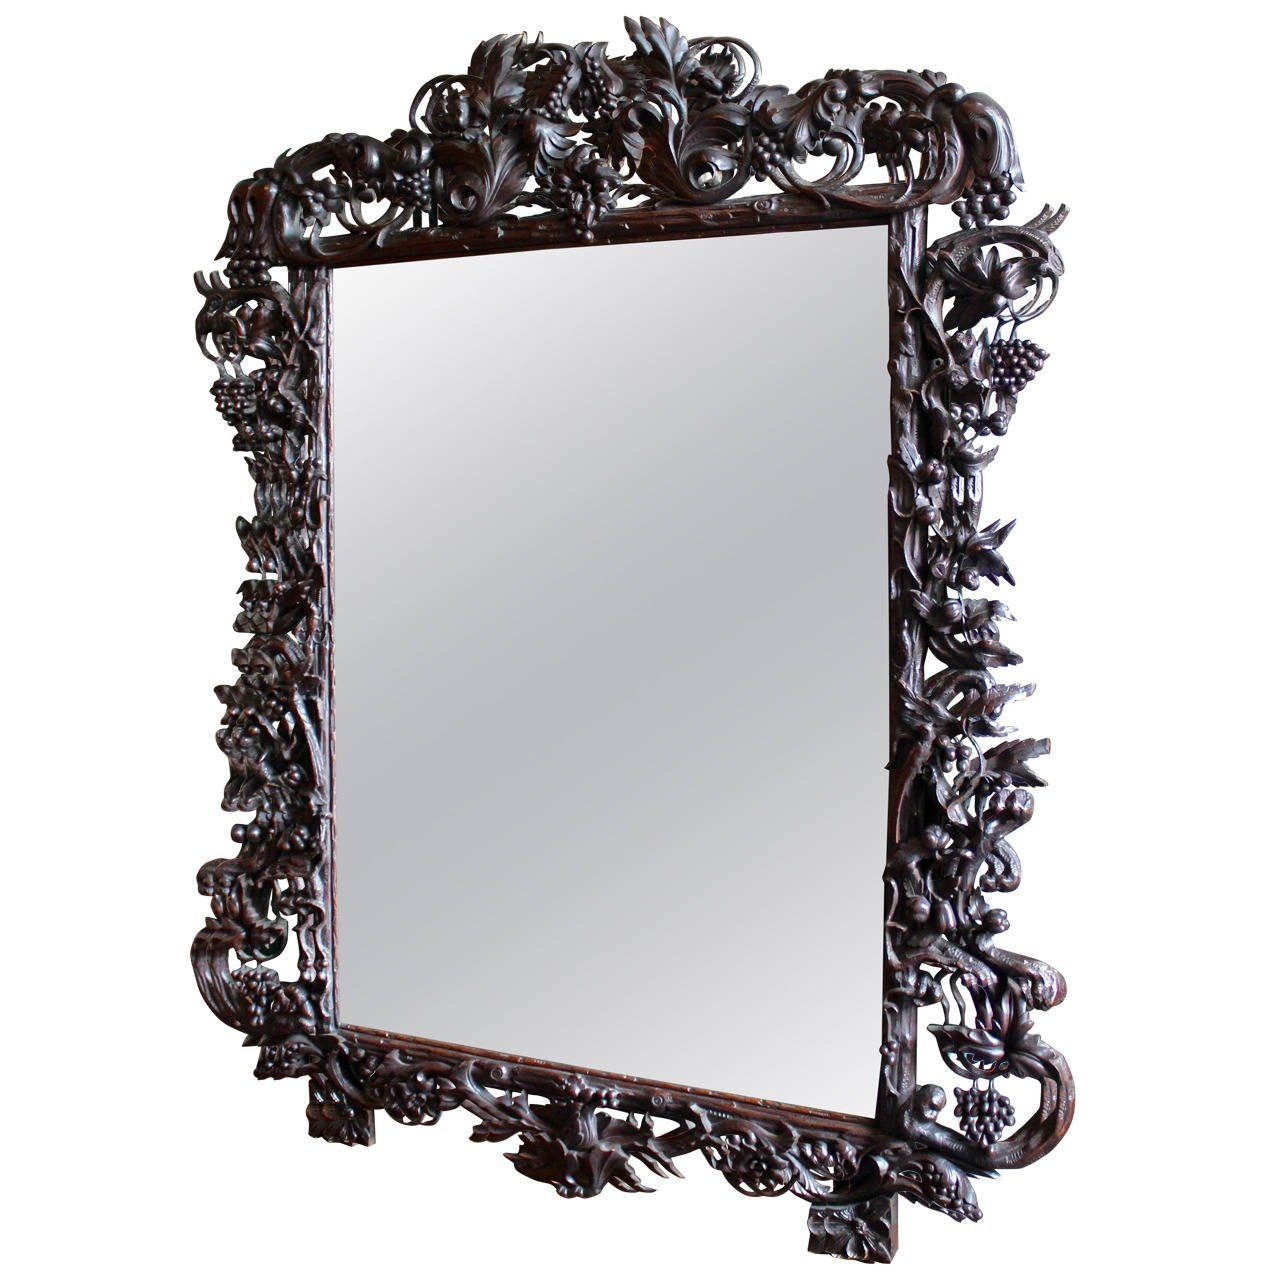 Late 19th Century Ornate Large Black Forest French Mirror At 1stdibs With Ornate Black Mirror (Image 10 of 15)